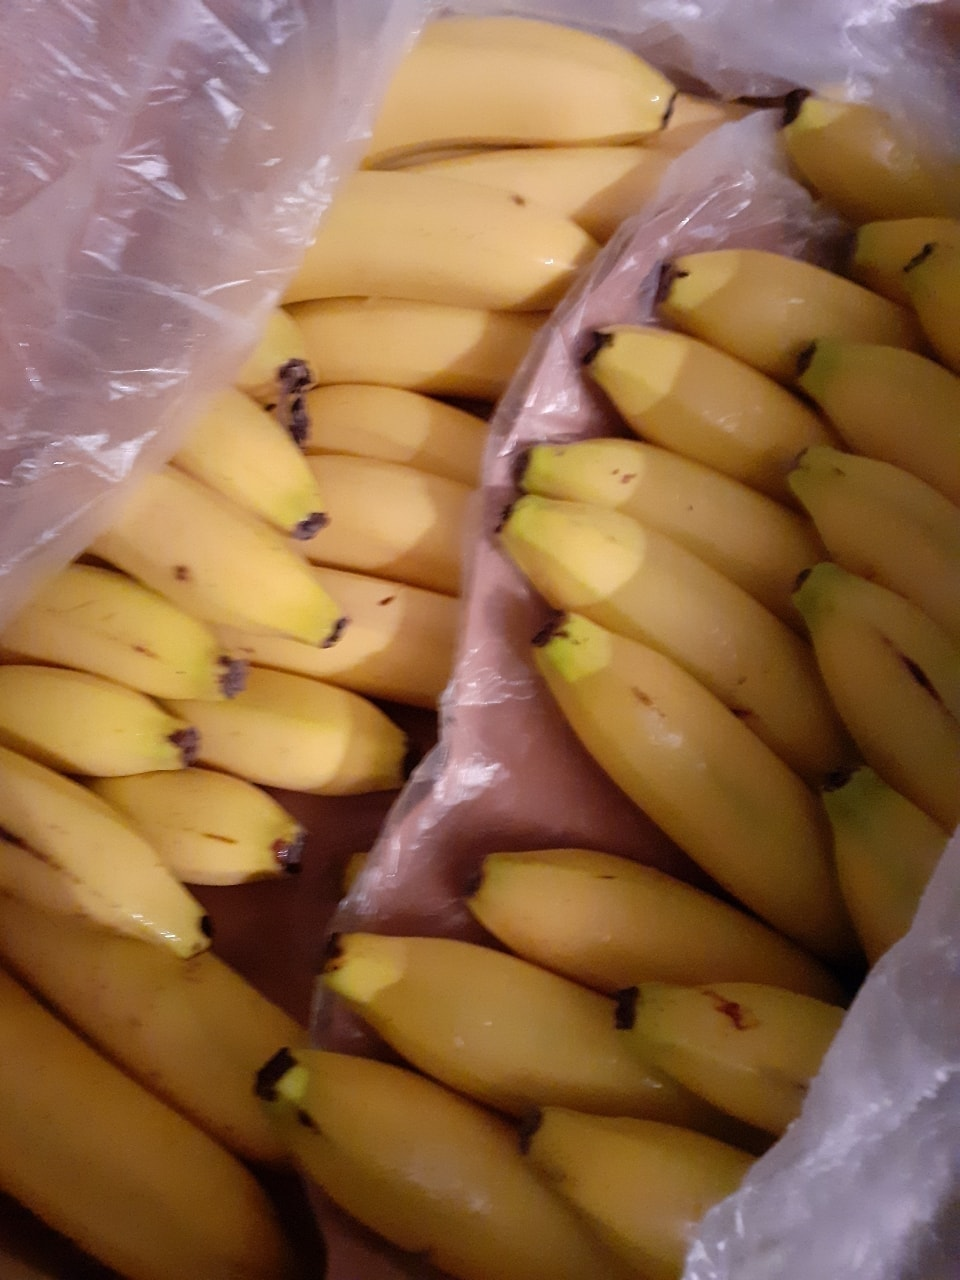 Bananas (7 in a bunch)